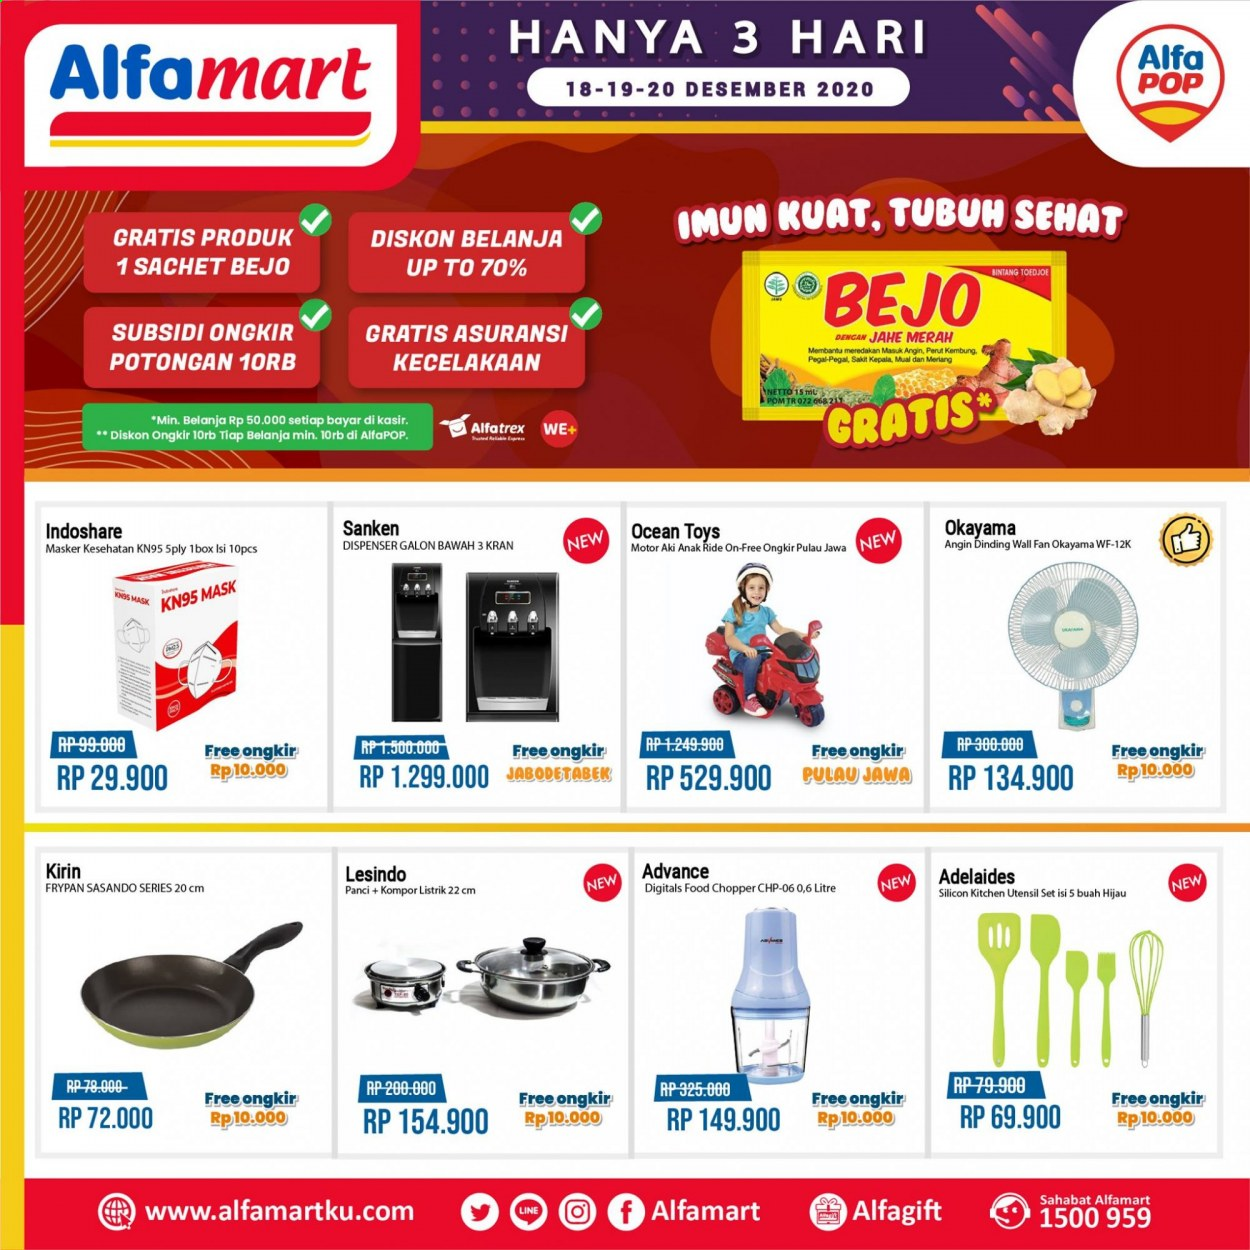 Promo Alfamart - 12/18/2020 - 12/20/2020 - Produk diskon - wall fan, panci, mask, kitchen, fan, fry pan, dispenser, alfa, anak. Halaman 1.